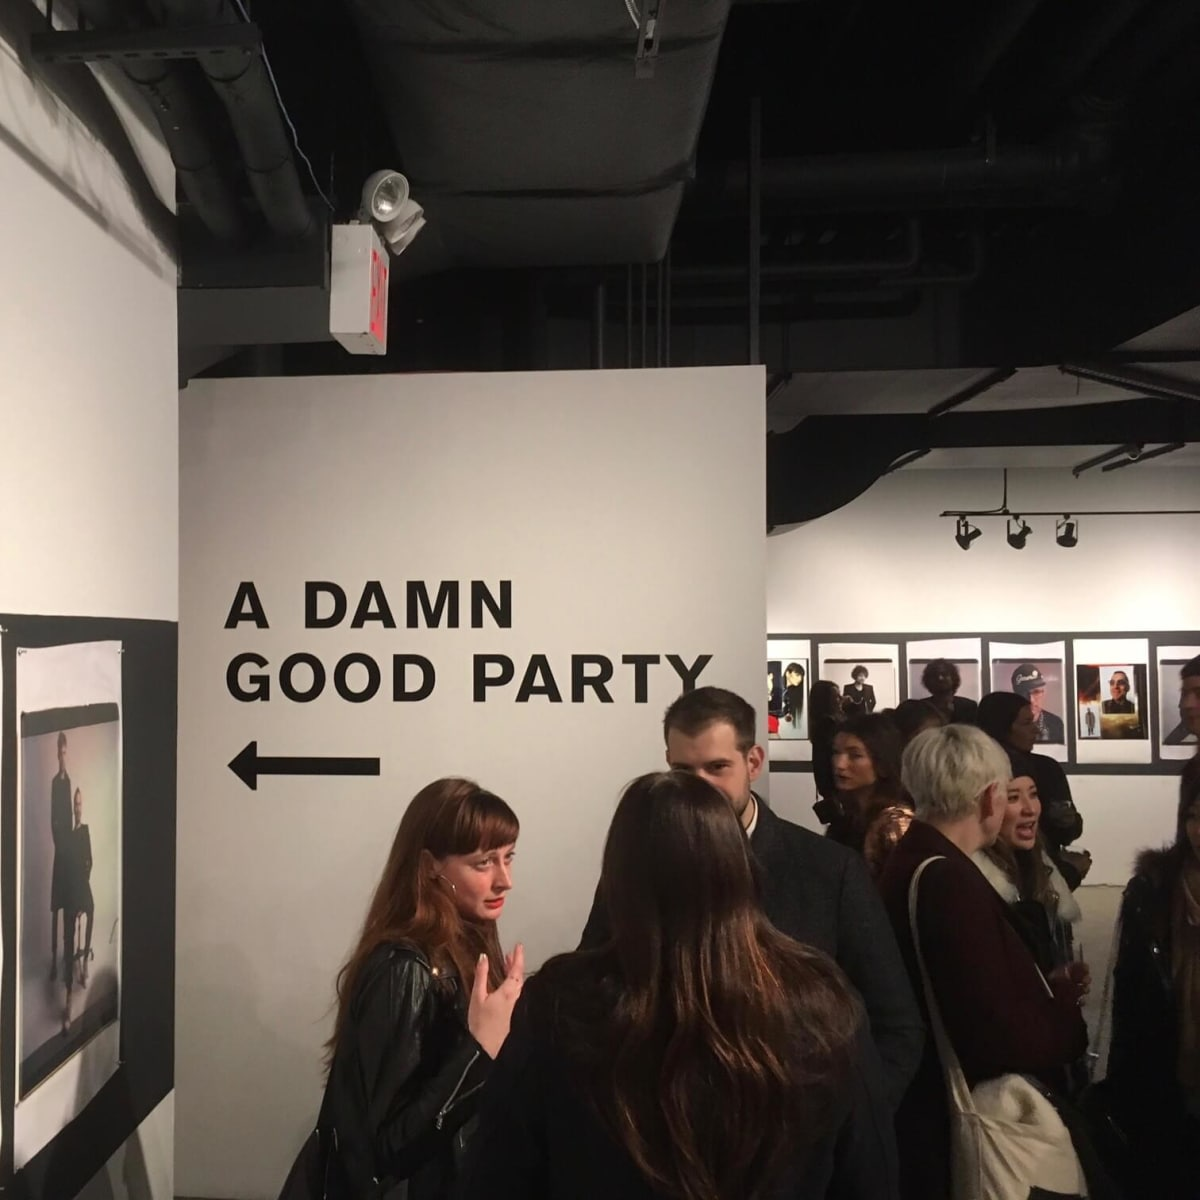 Damn Good Party sign at Rag & Bone party